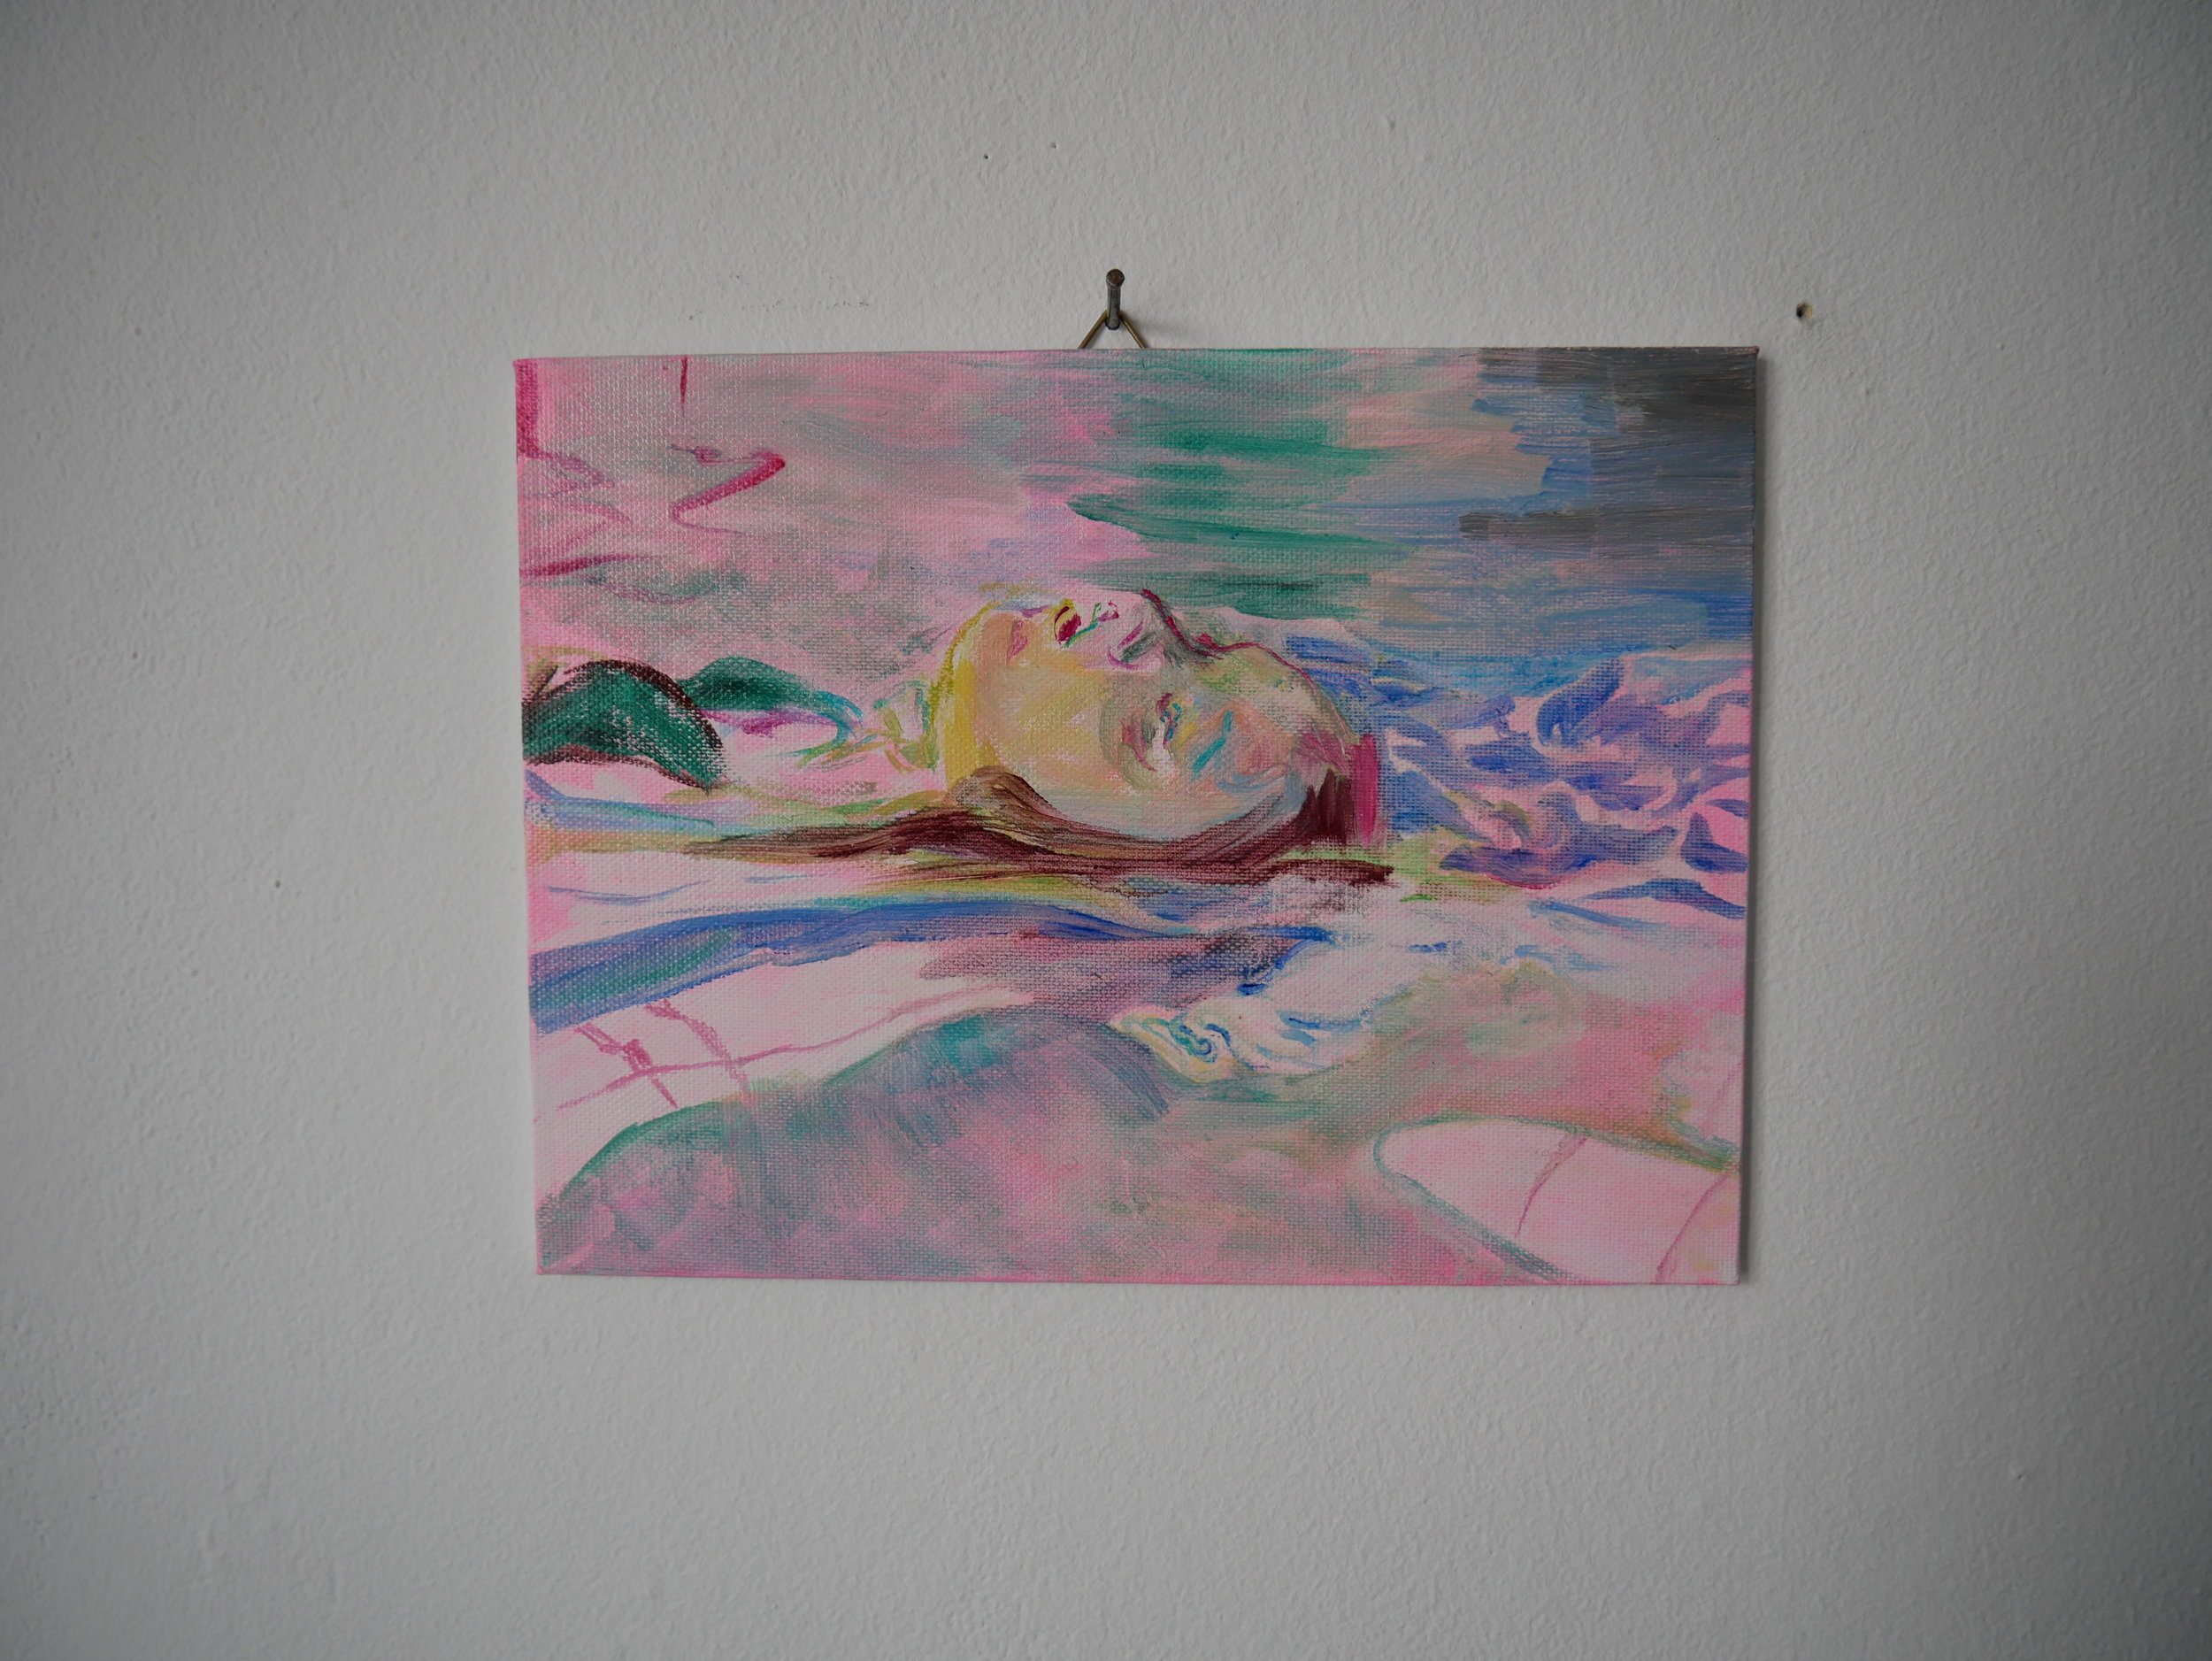 Backstroke Pink . Oil on cardboard 15 x 20 cm